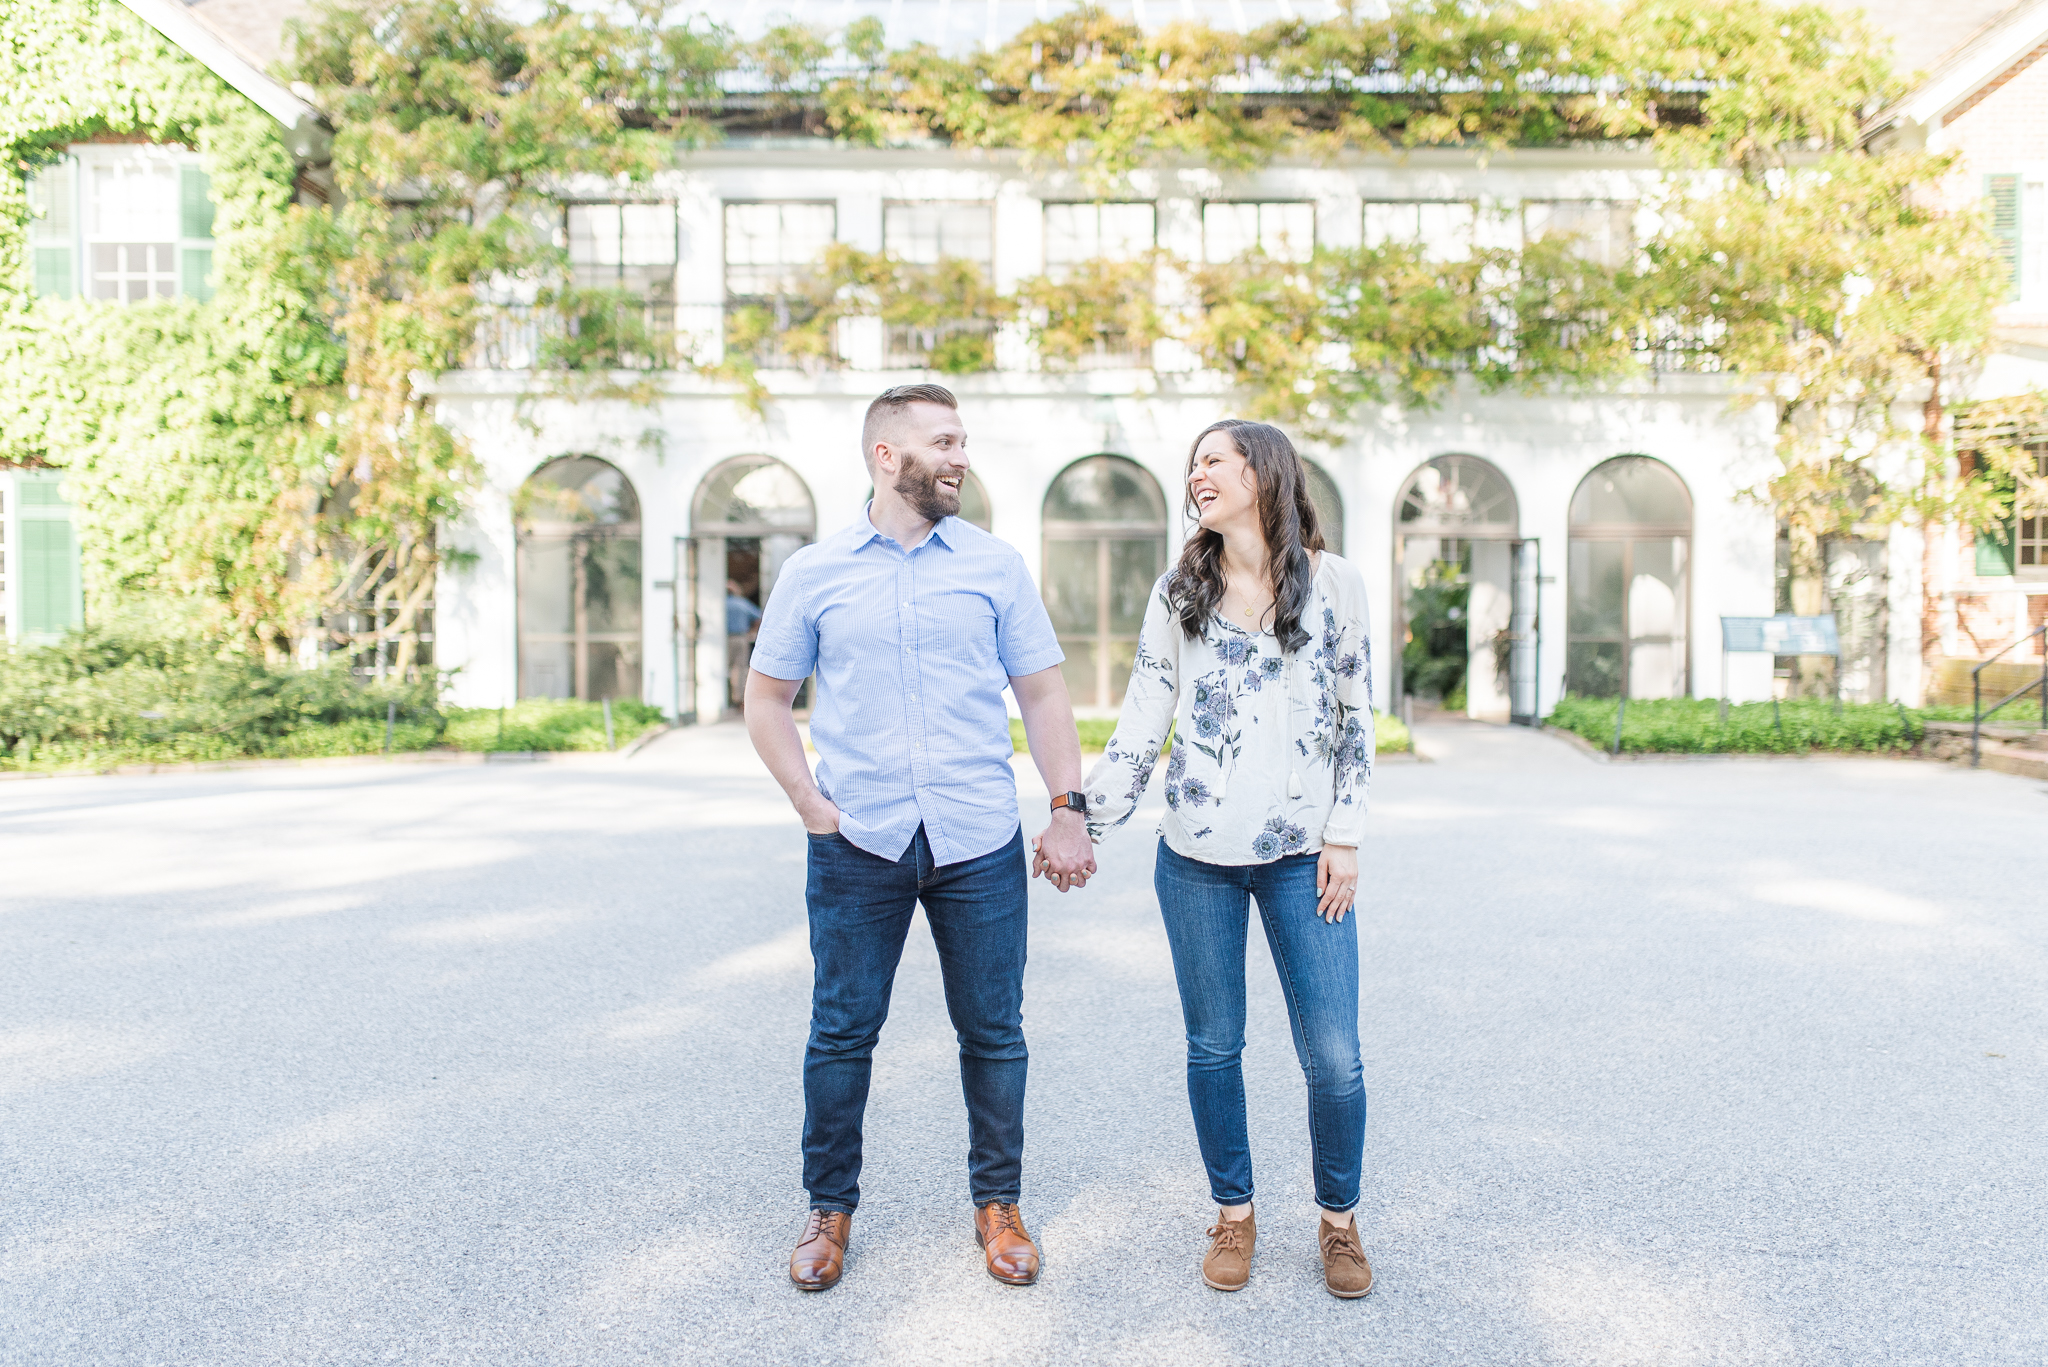 05_18_2019_Dana_Slifer_Photography_Heather_and_Sean_Engagement_Session_WEB_11.jpg